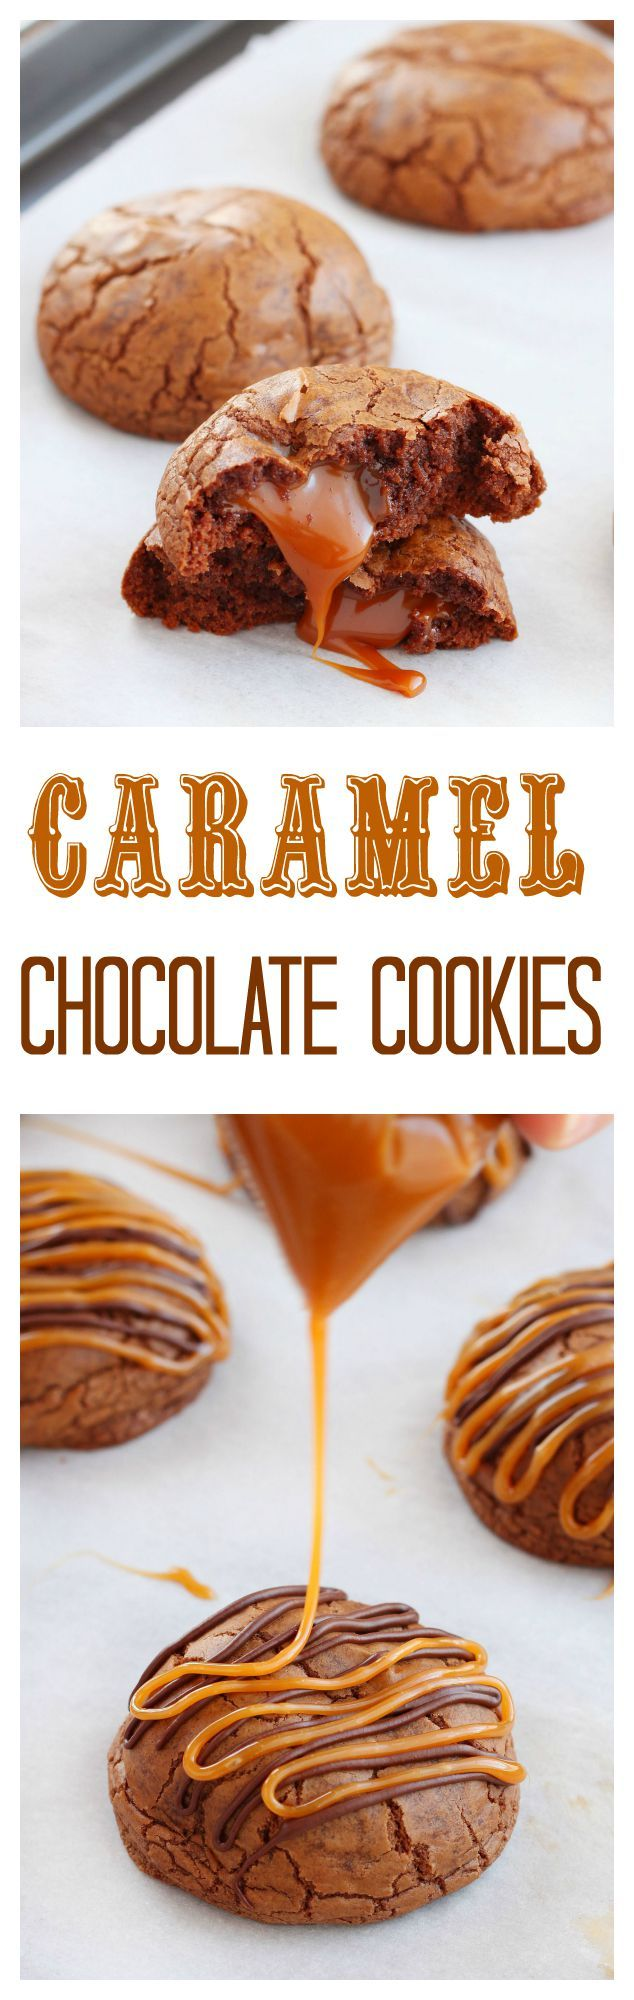 Irresistible rich chocolate cookies stuffed with gooey caramels and finished…